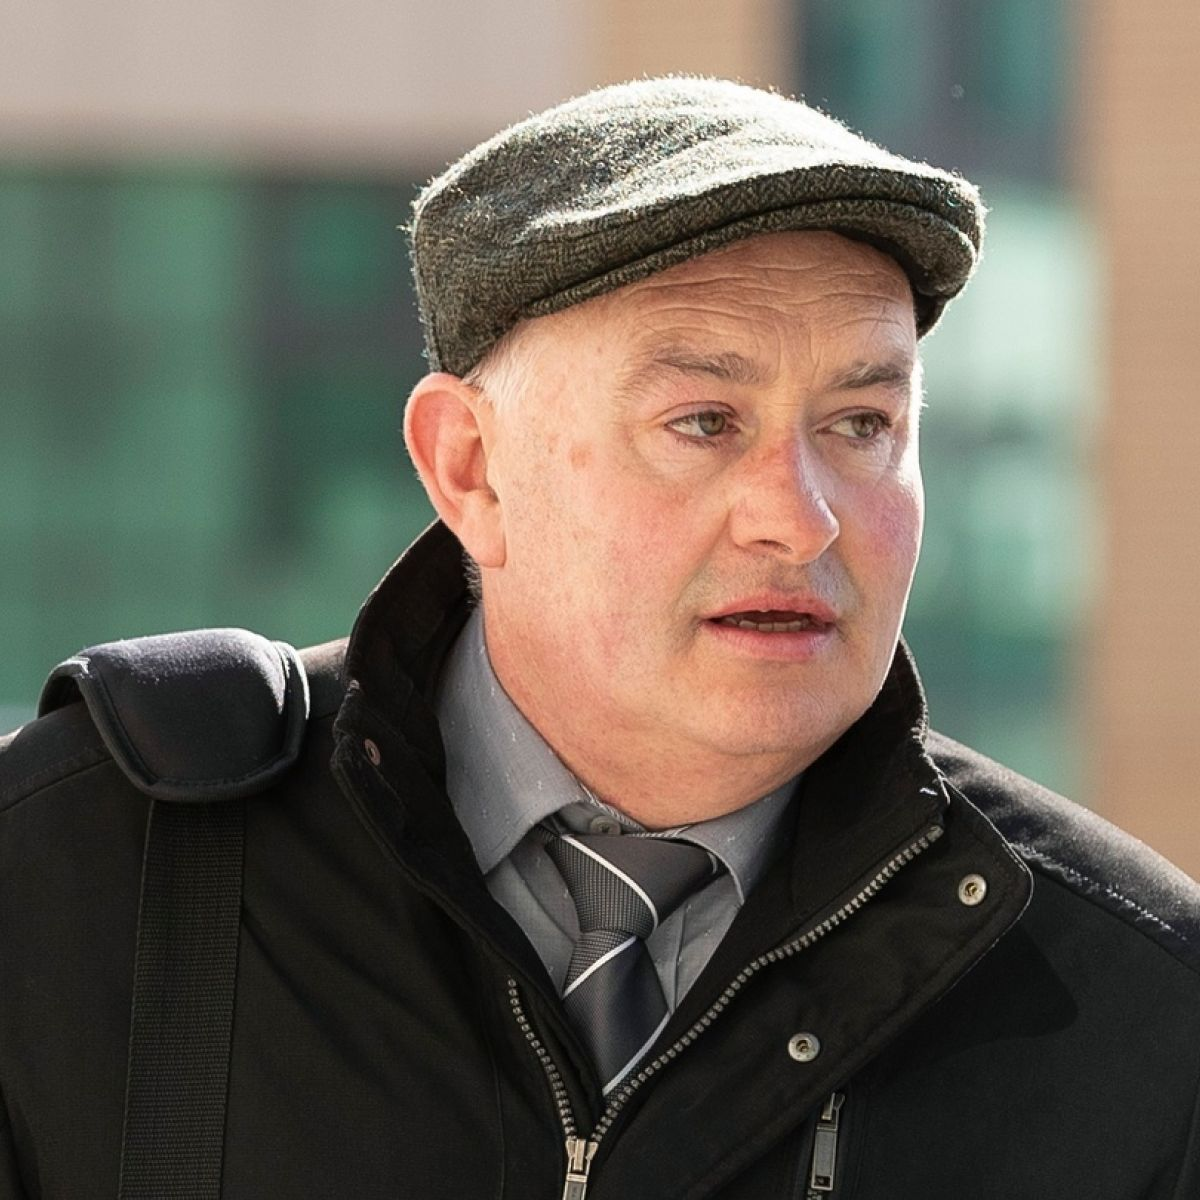 Human Body Decomposition Search Carried Out On A Computer Seized In Quirke House Court Told